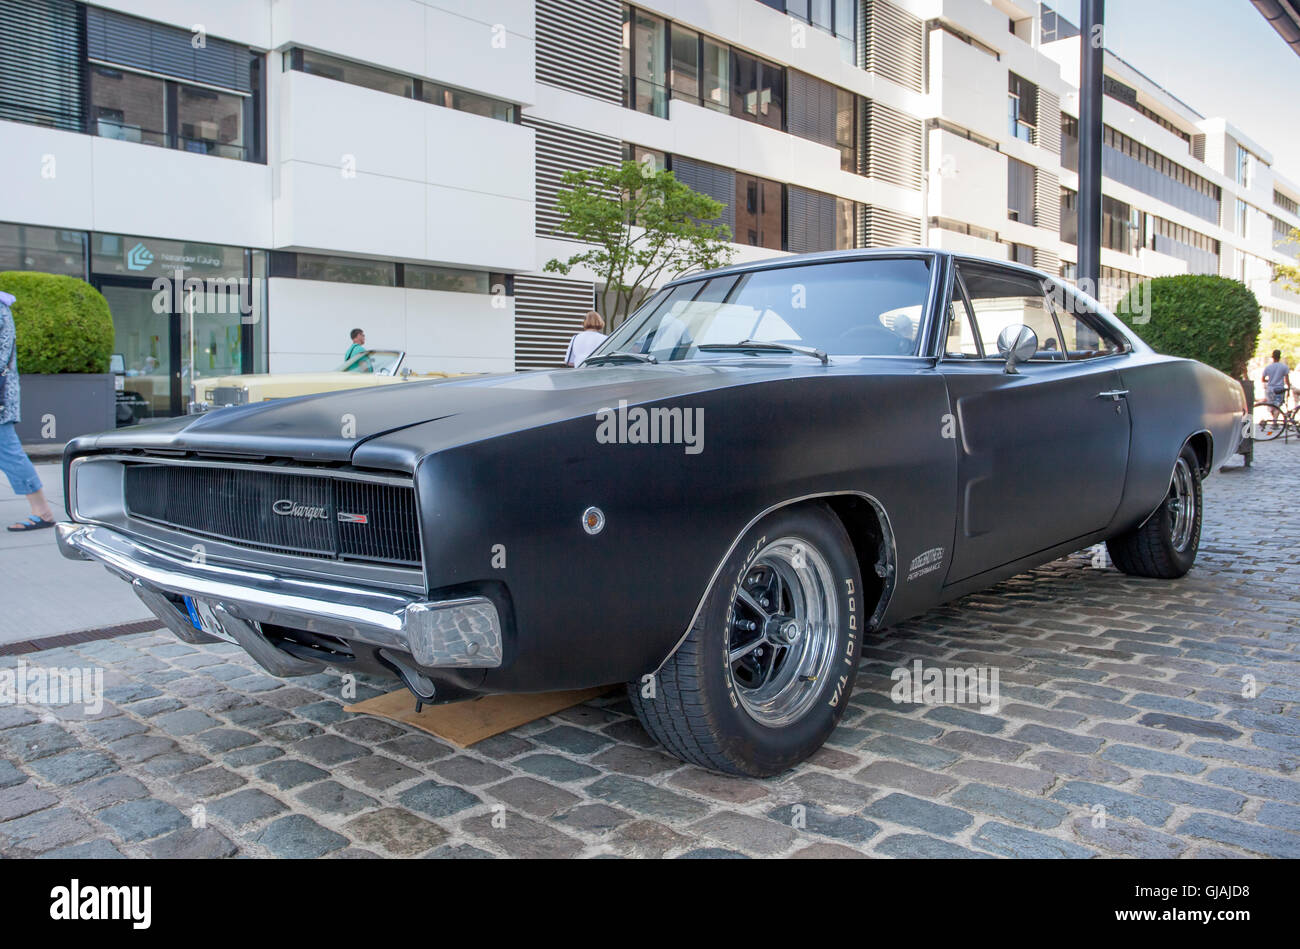 Historic Dodge Charger - Stock Image